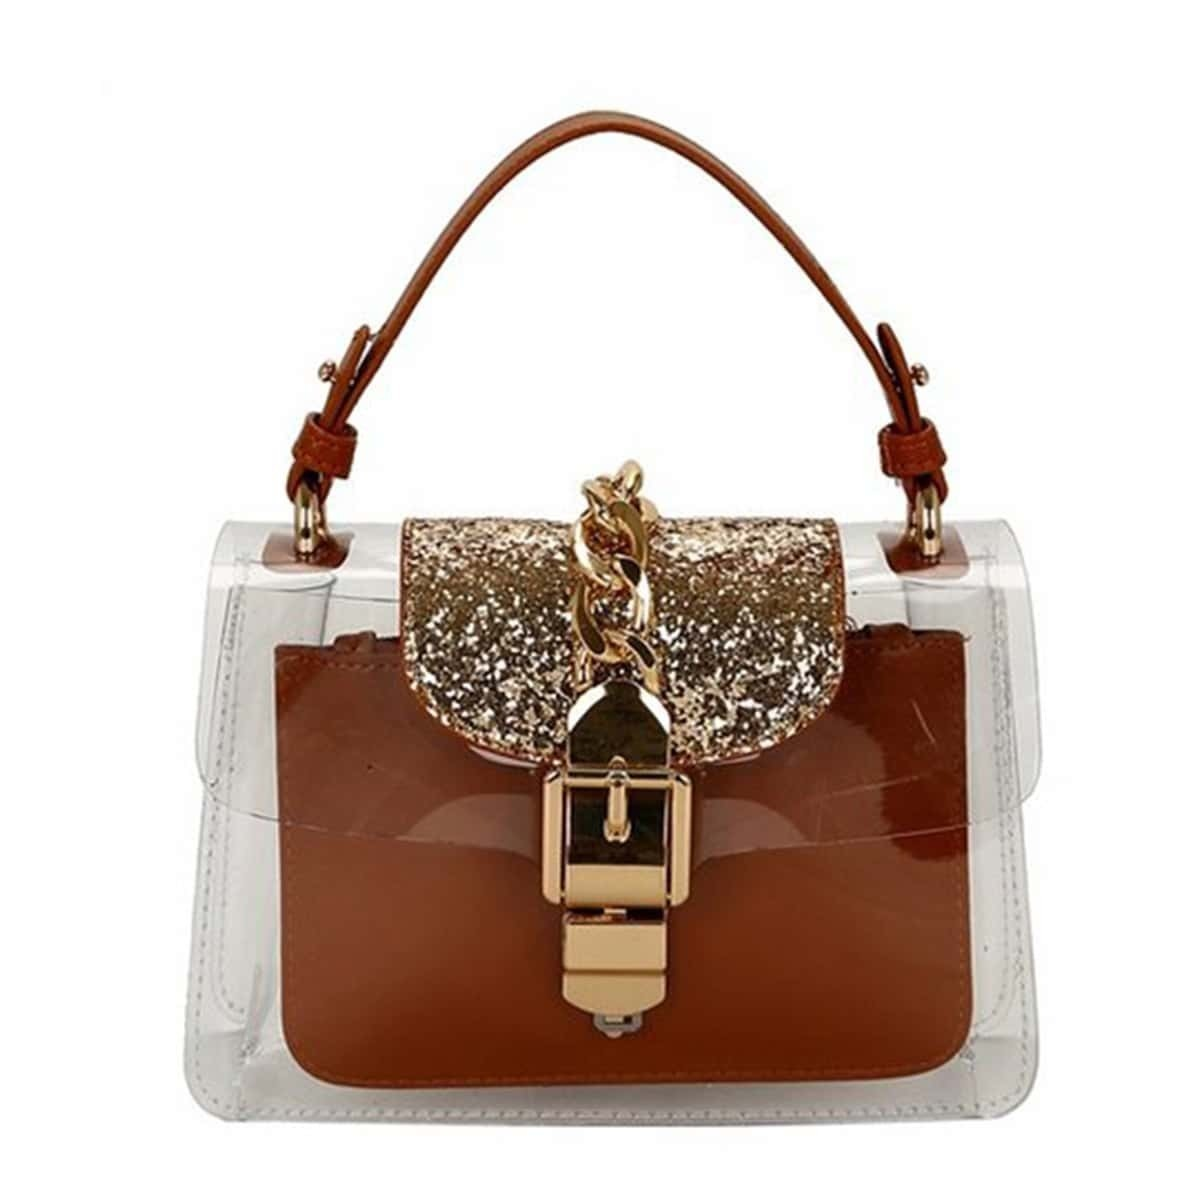 - Transparent PVC Bag With Inner Clutch